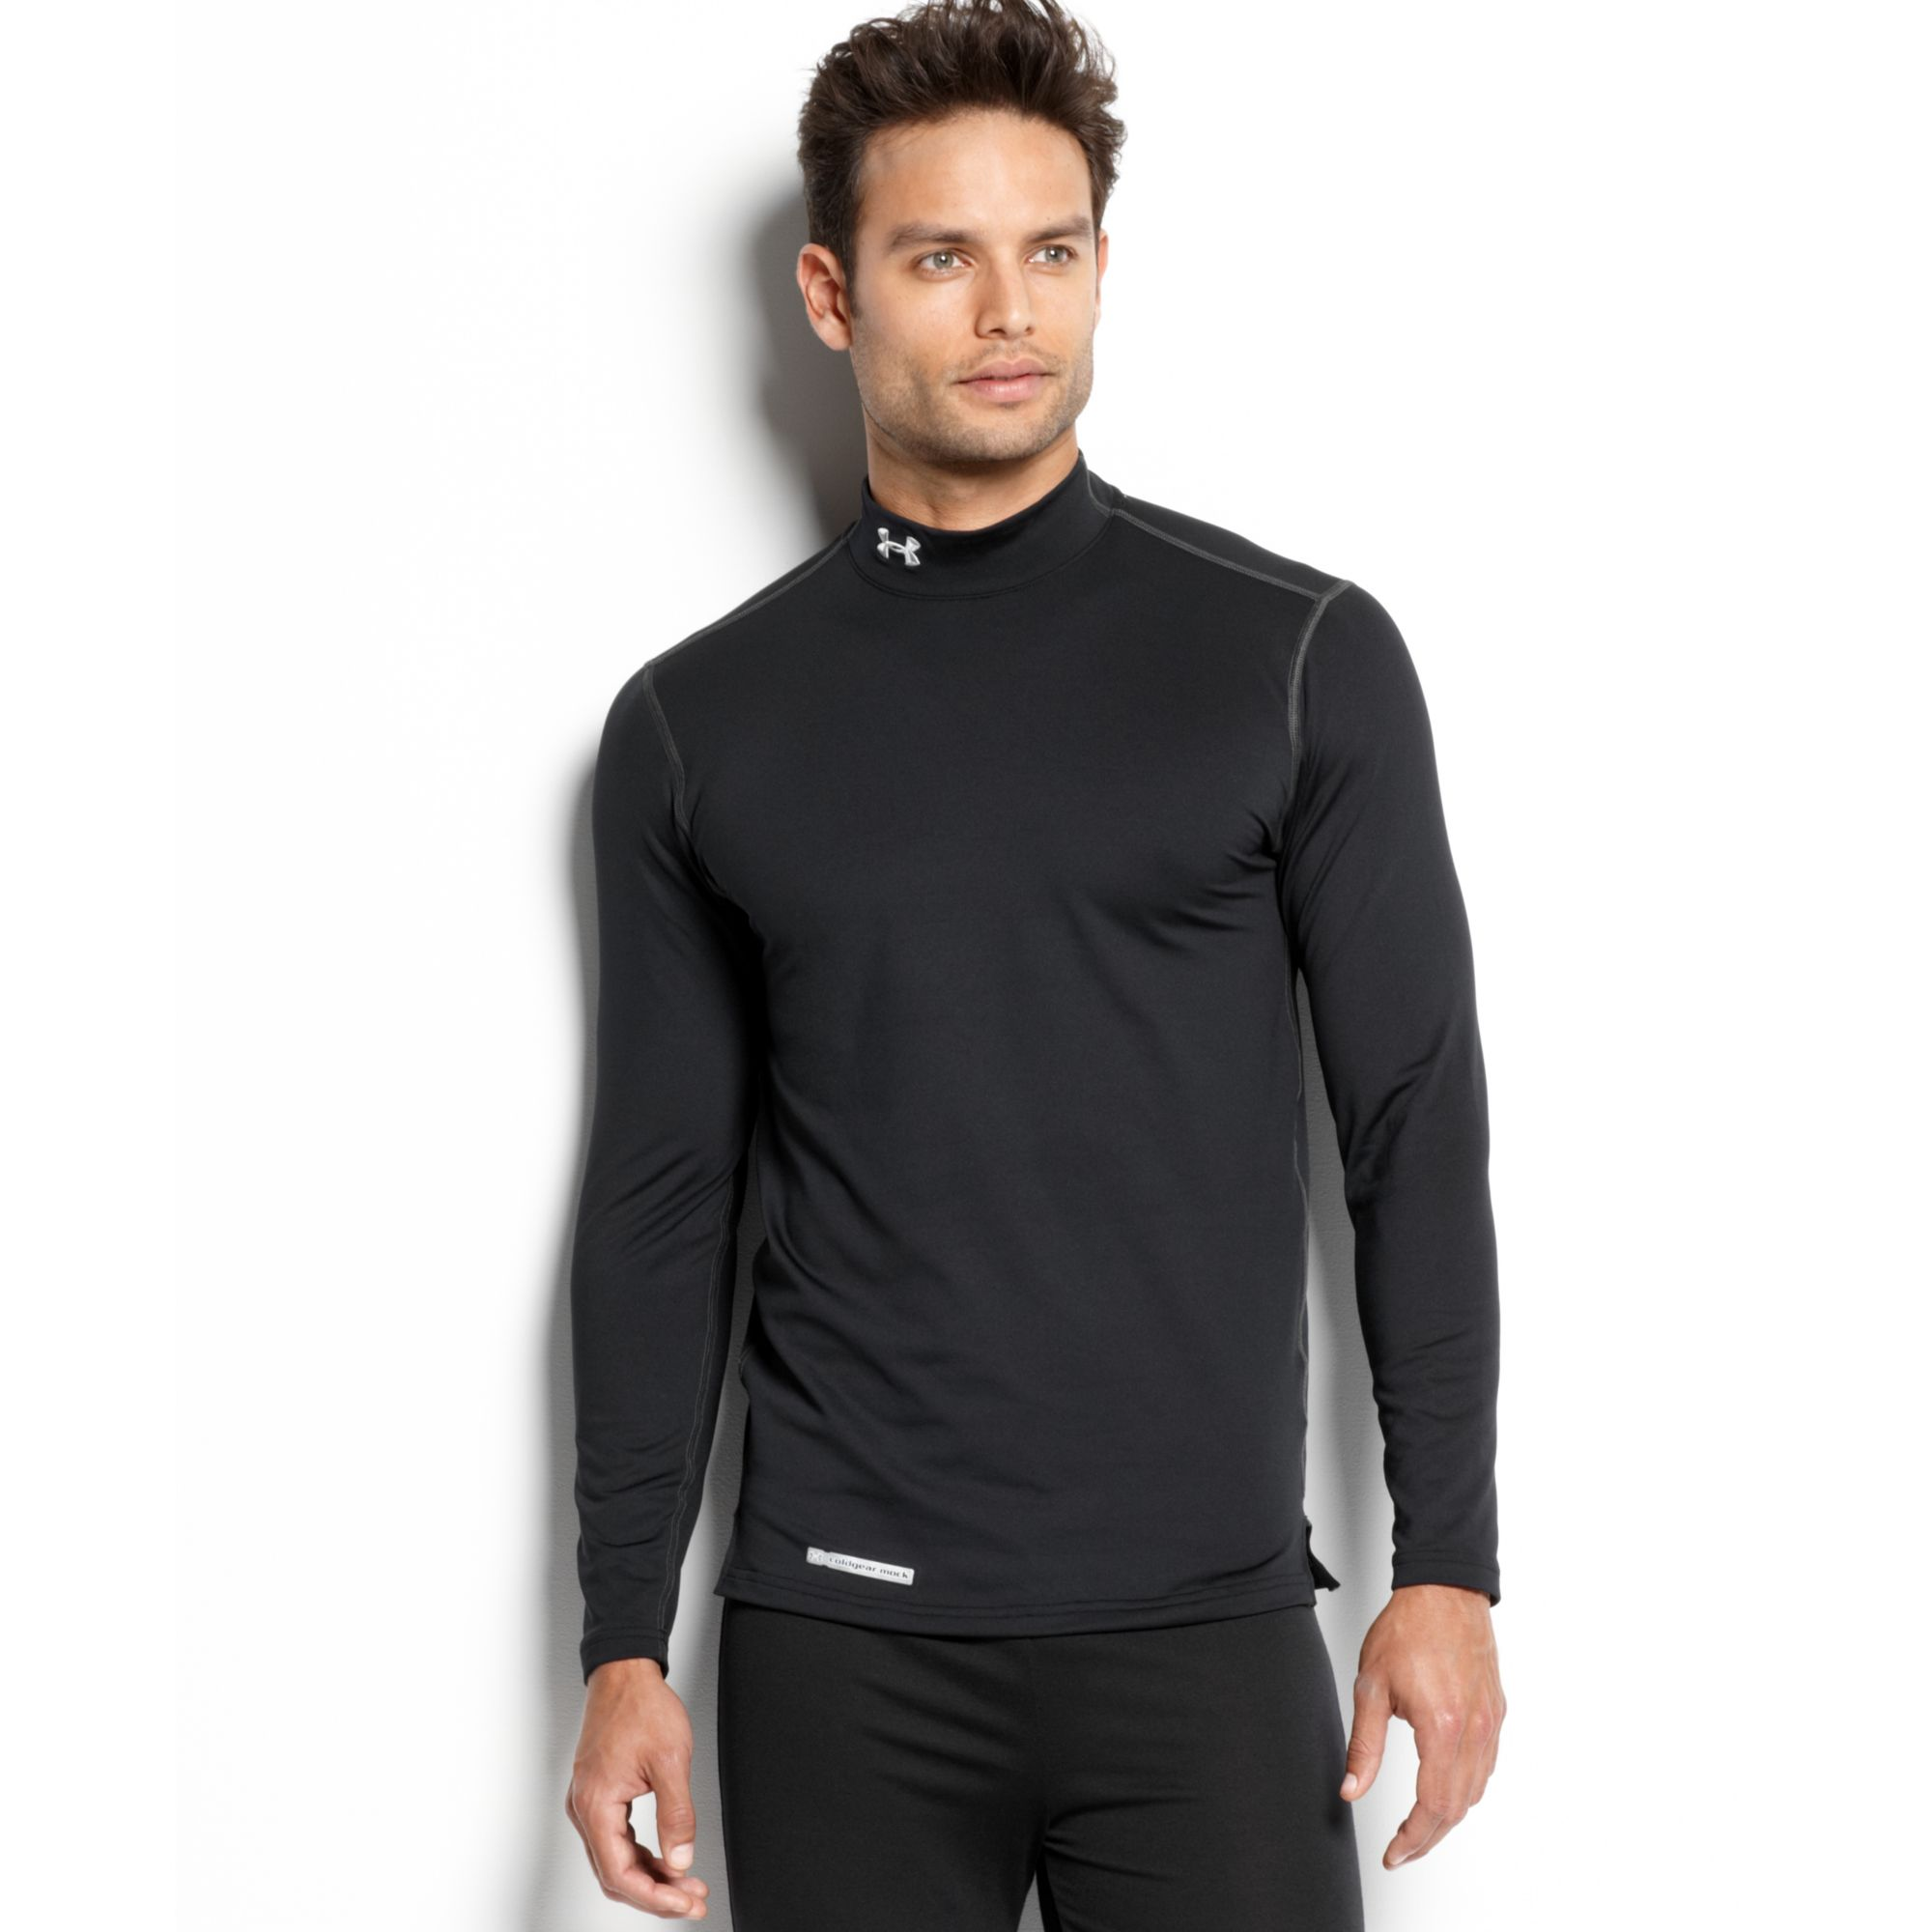 Under Armour Evo Coldgear Fitted Long Sleeve Mock T Shirt